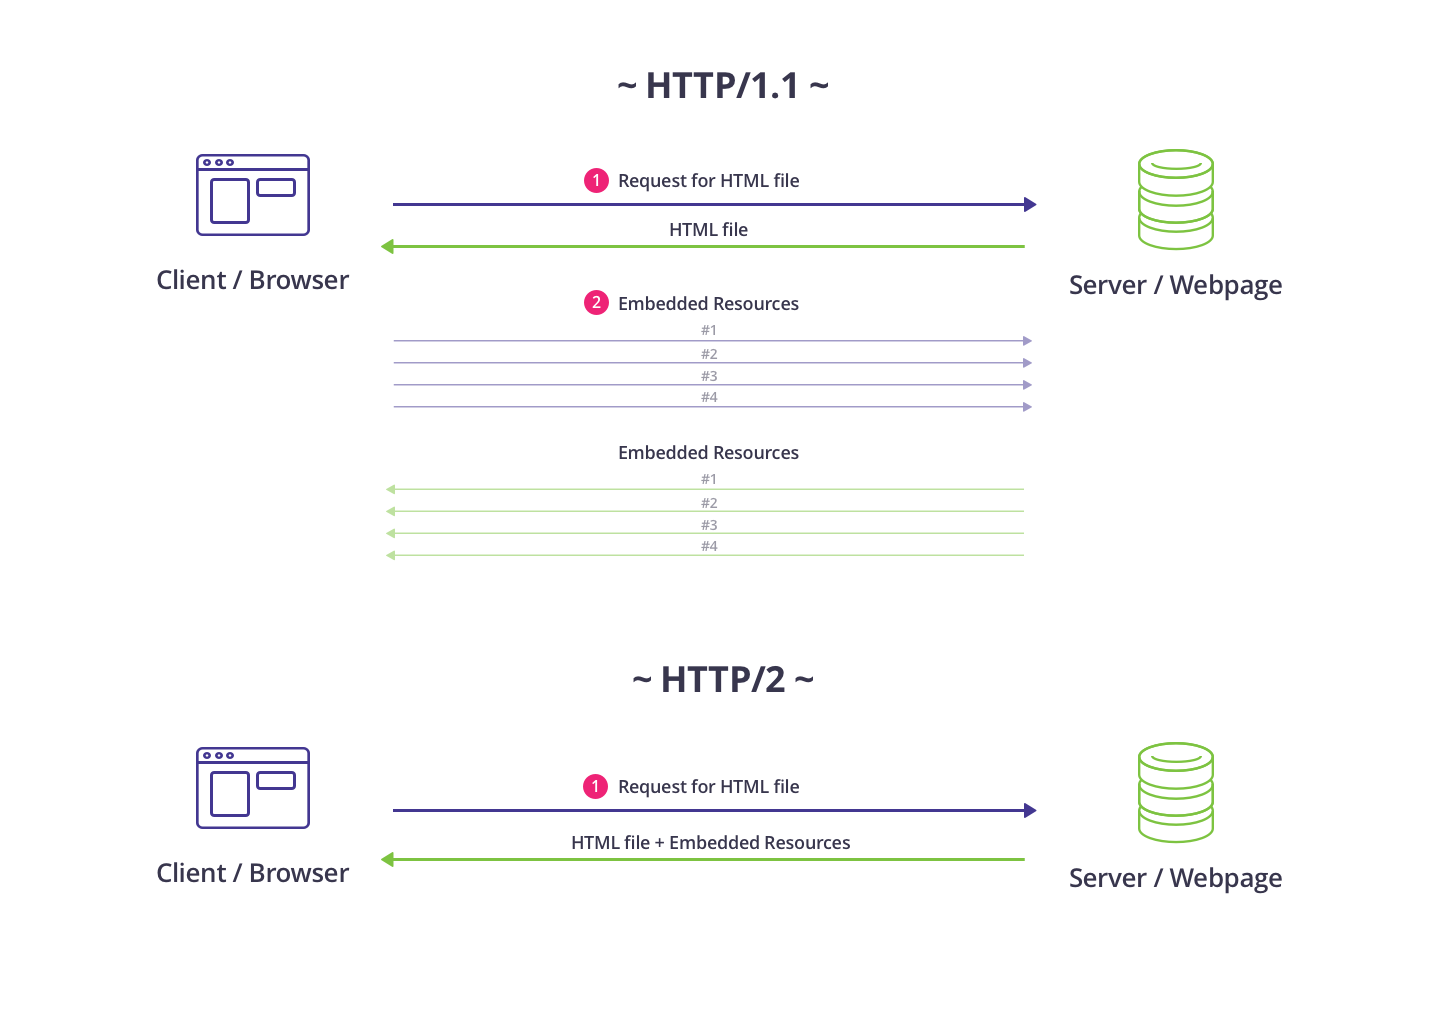 HTTP/2 server push diagram